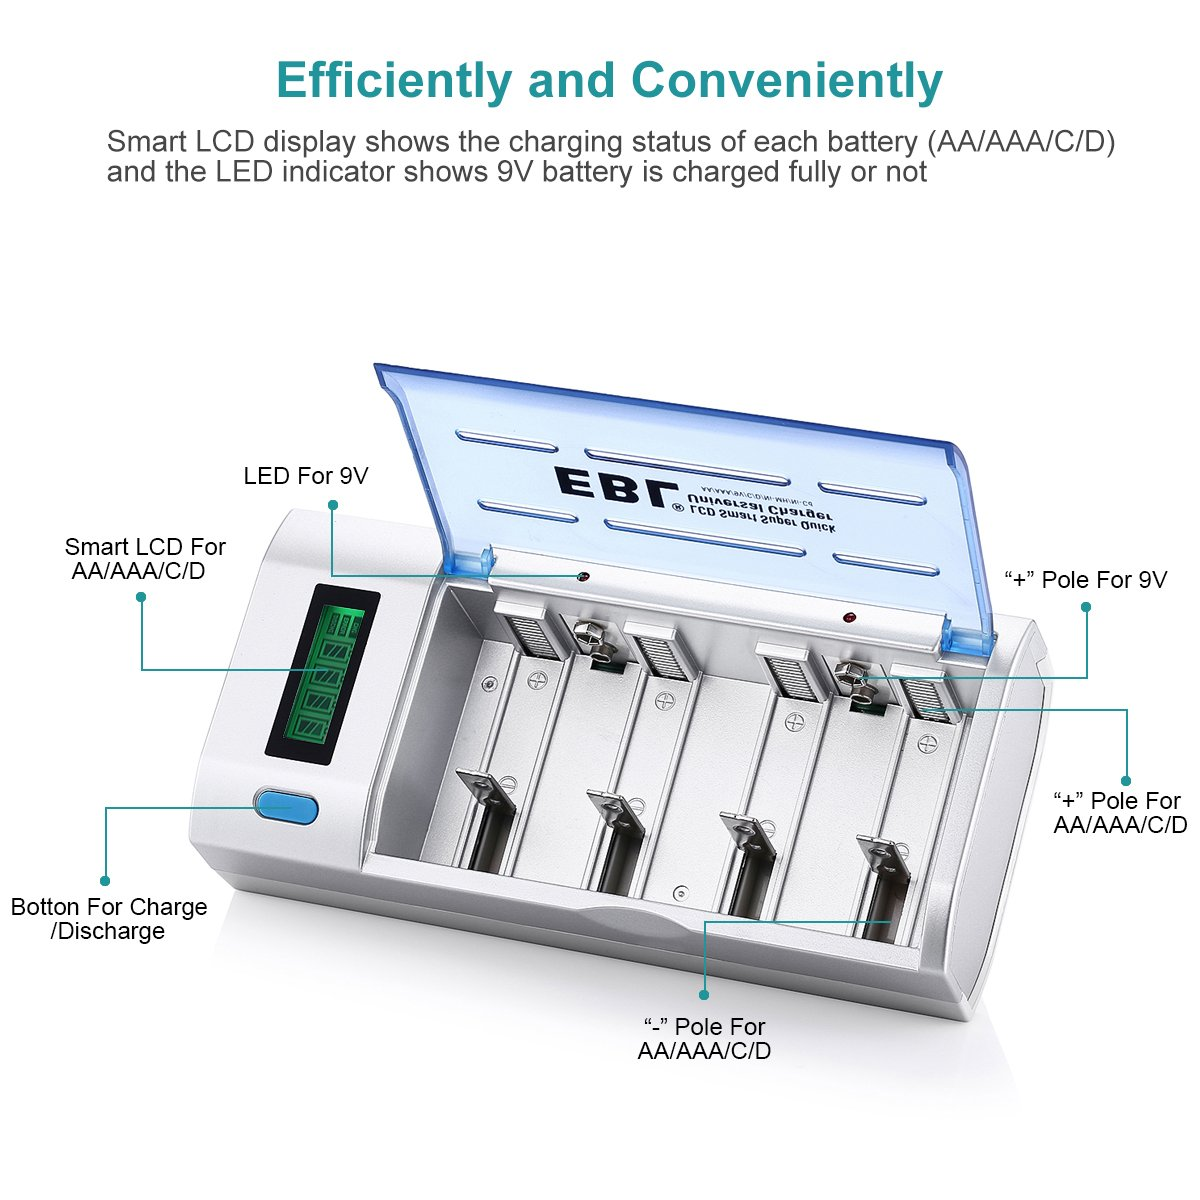 Amazon.com: EBL 906 Smart Charger for AA AAA C D 9V Rechargeable Batteries  with 4 Pieces 5000mAh C Rechargeable Batteries: Home Audio & Theater